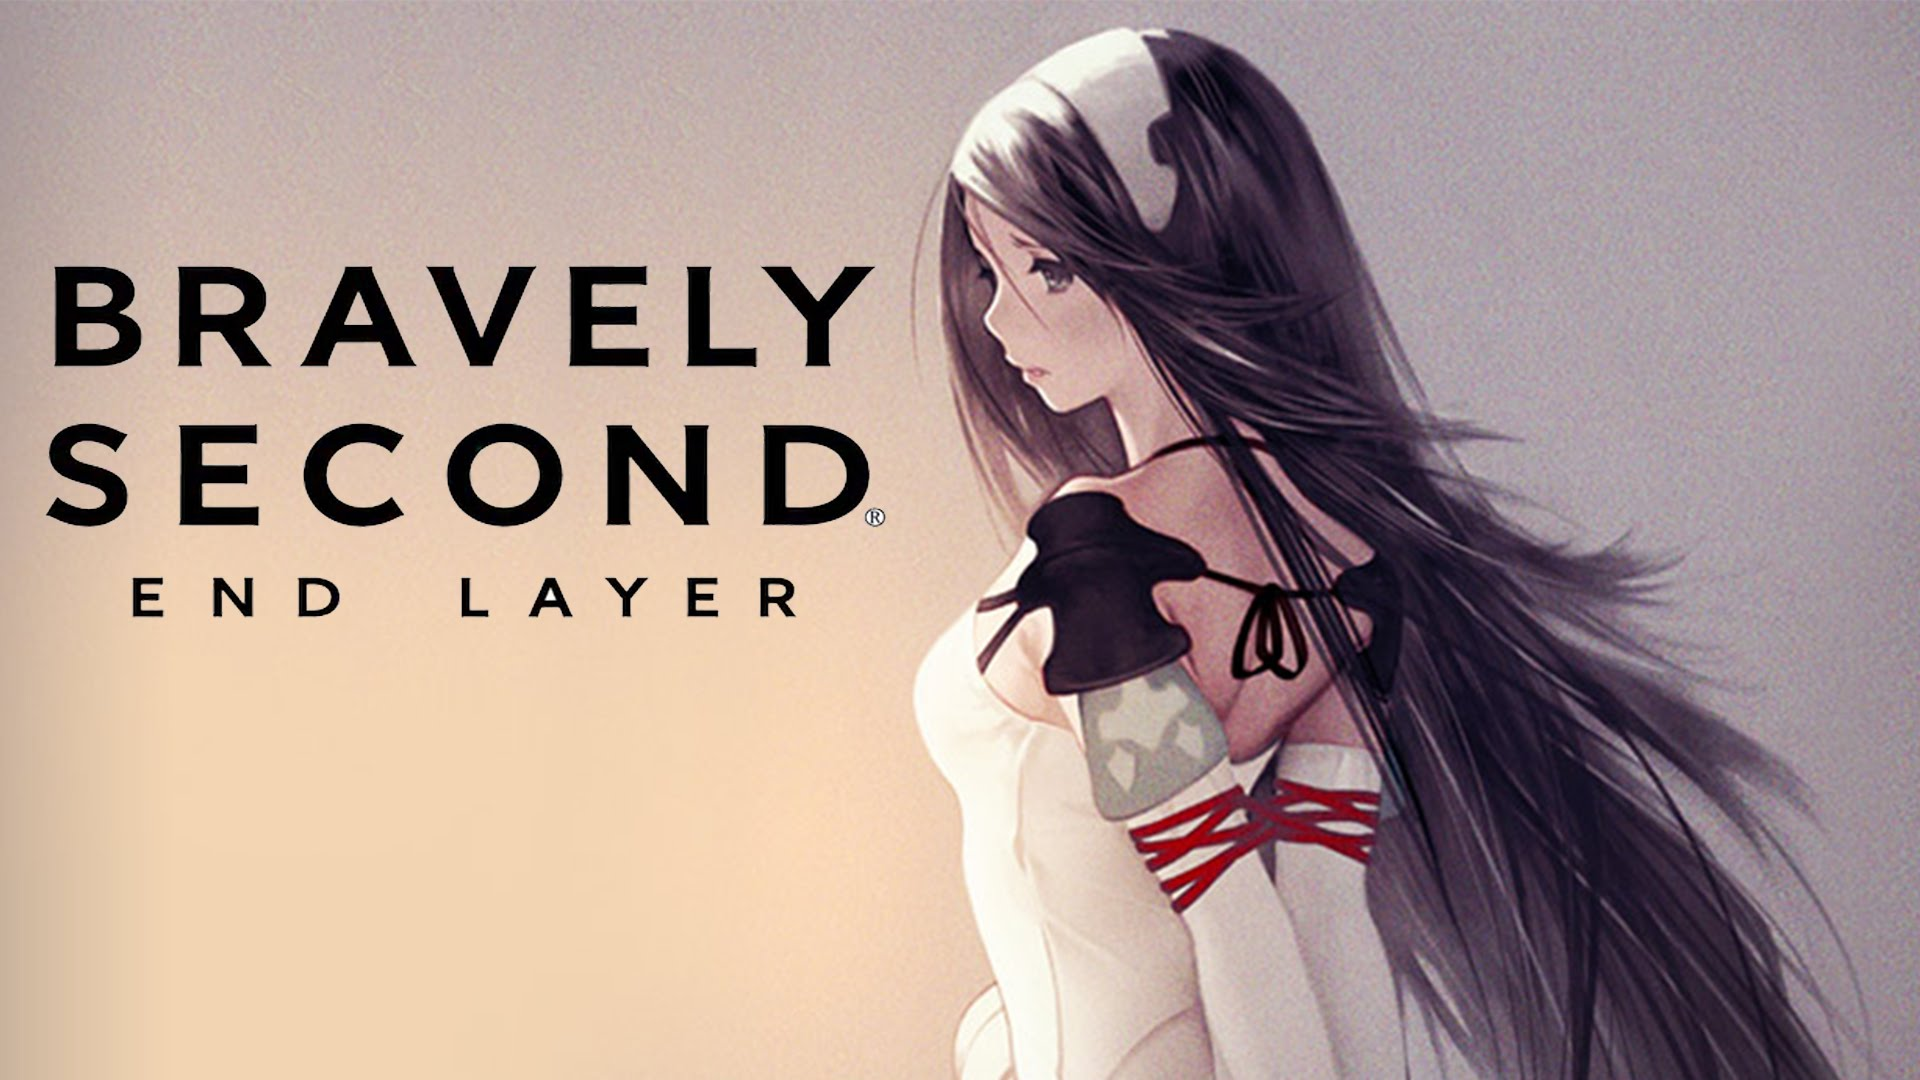 HQ Bravely Second: End Layer Wallpapers | File 188.02Kb